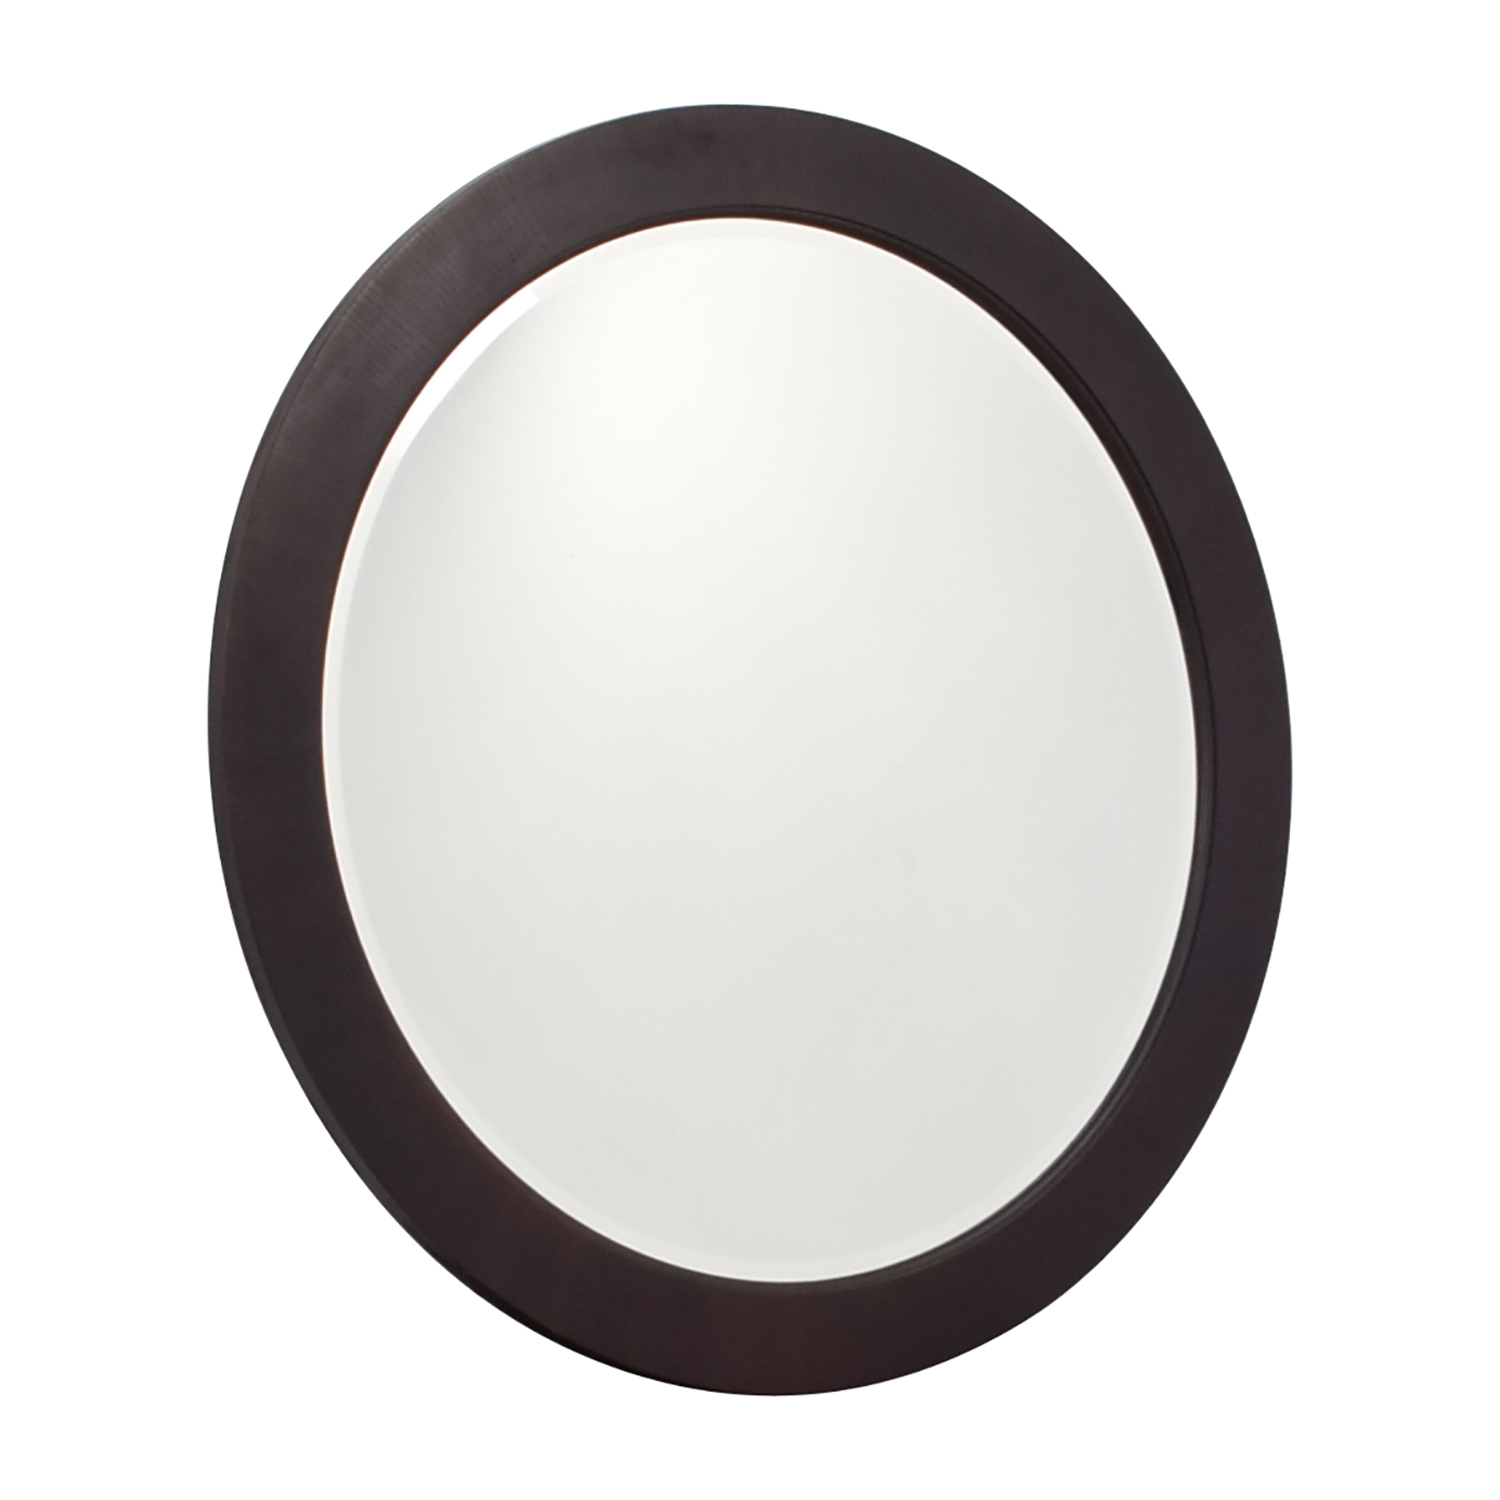 Ethan Allen Ethan Allen Horizons Oval Wall Mirror used